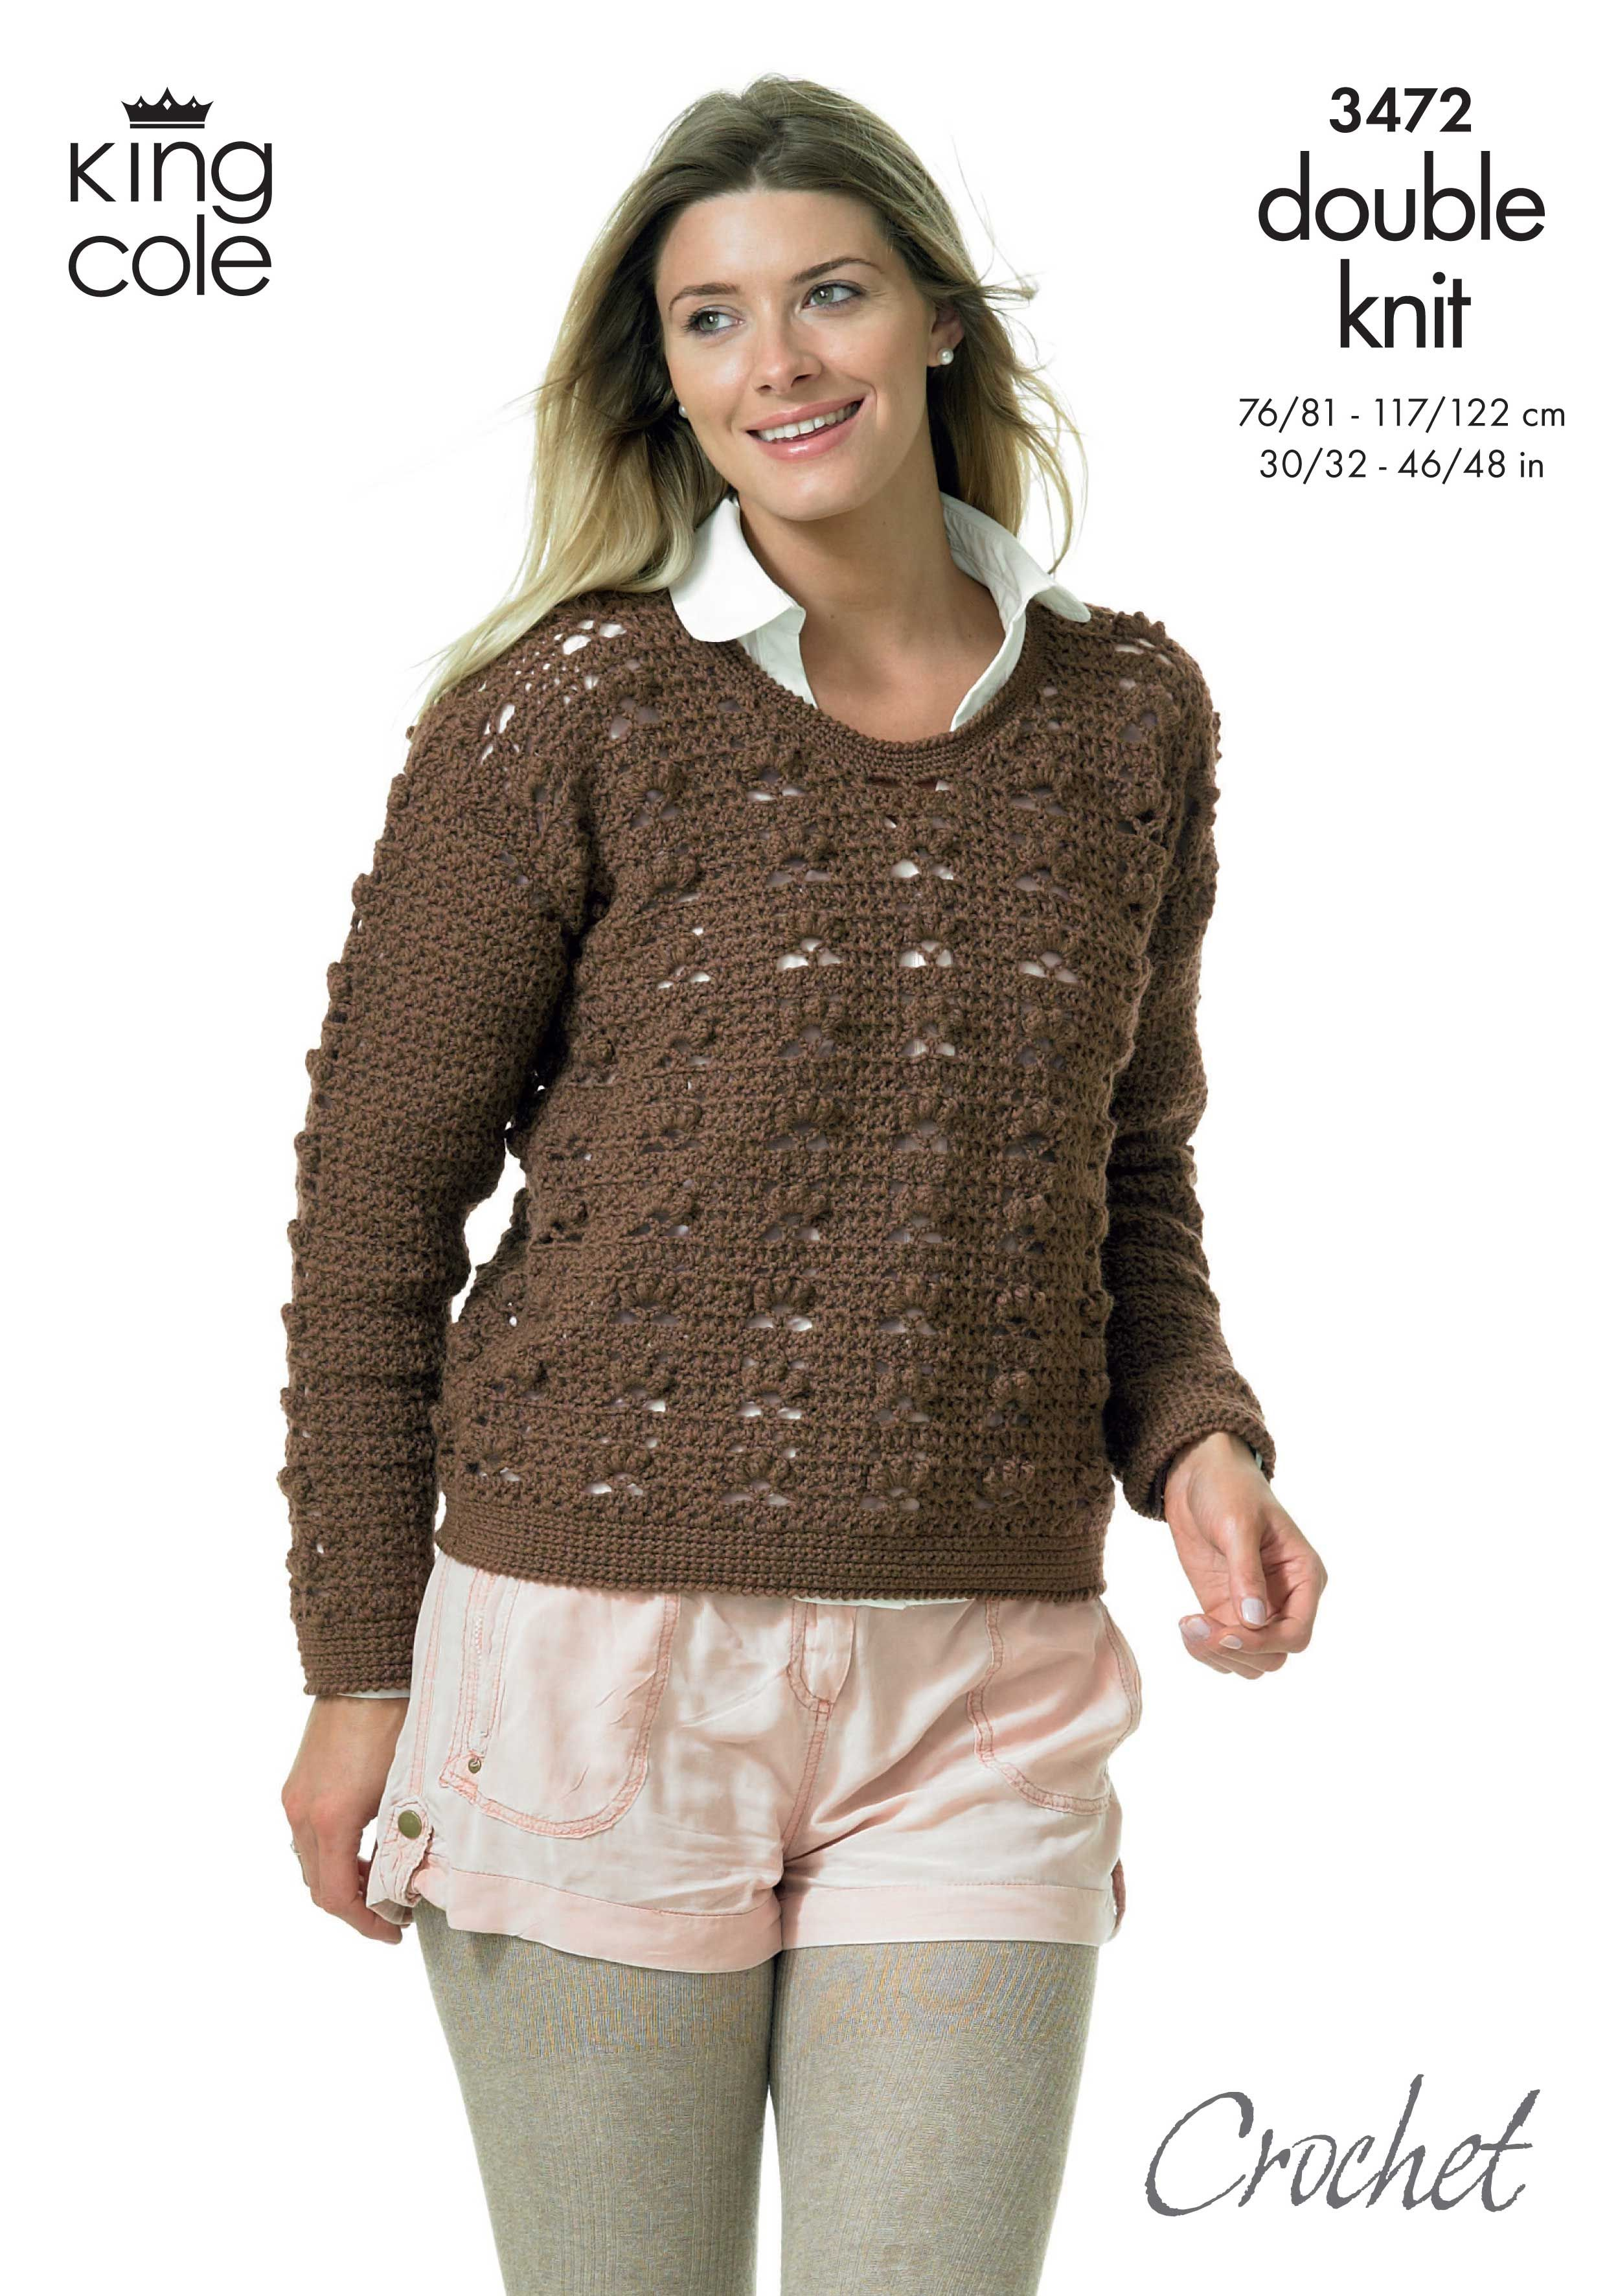 Crochet cropped Jumper - King Cole | crochet patterns to try ...